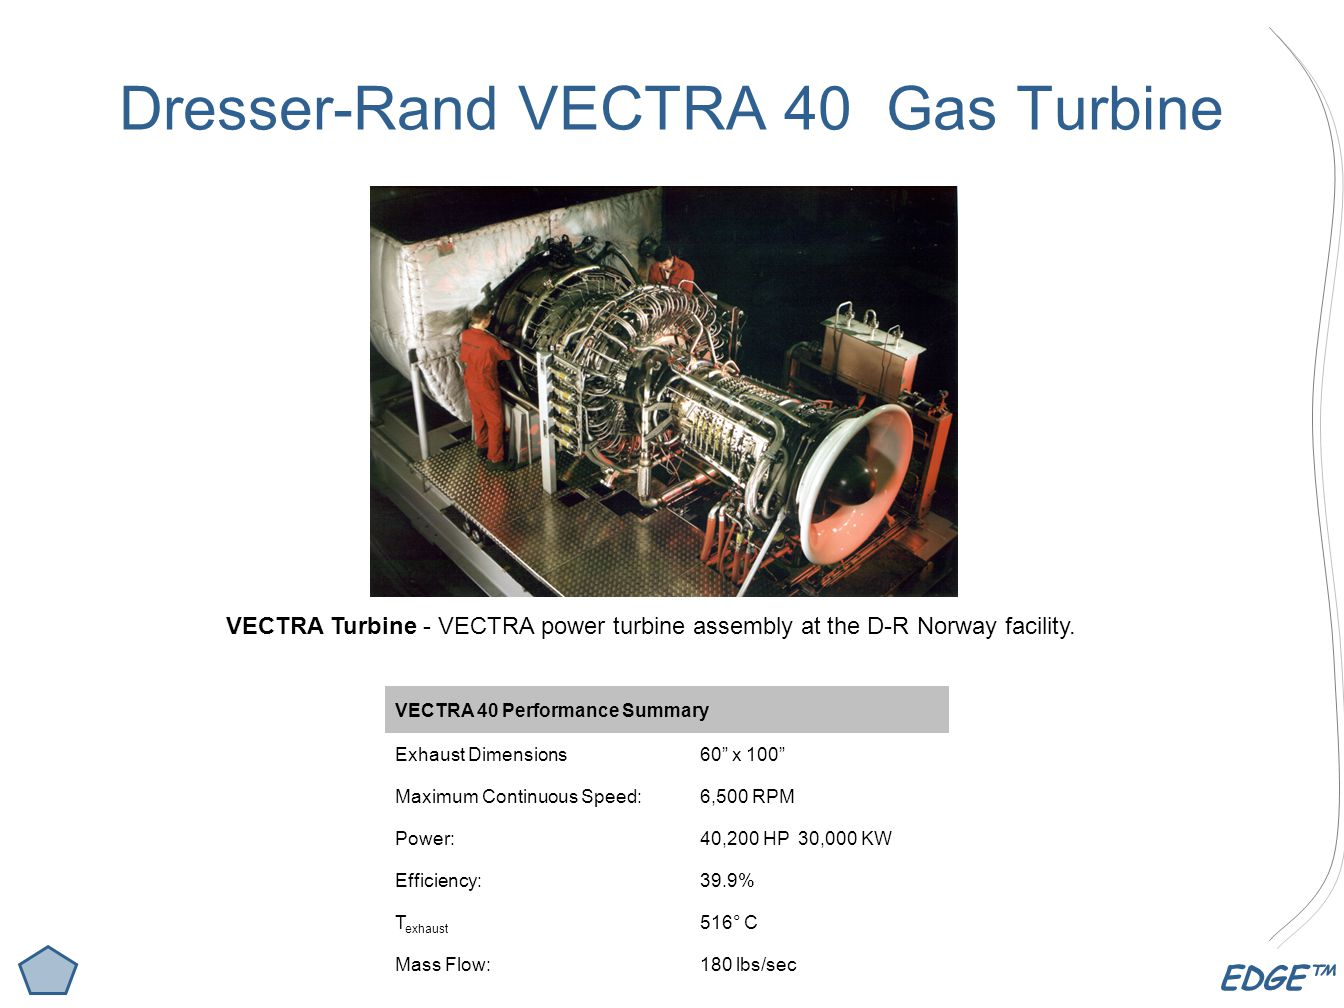 EDGE™ Dresser-Rand VECTRA 40 Gas Turbine VECTRA 40 Performance Summary Exhaust Dimensions60 x 100 Maximum Continuous Speed:6,500 RPM Power:40,200 HP 30,000 KW Efficiency:39.9% T exhaust 516° C Mass Flow:180 lbs/sec VECTRA Turbine - VECTRA power turbine assembly at the D-R Norway facility.